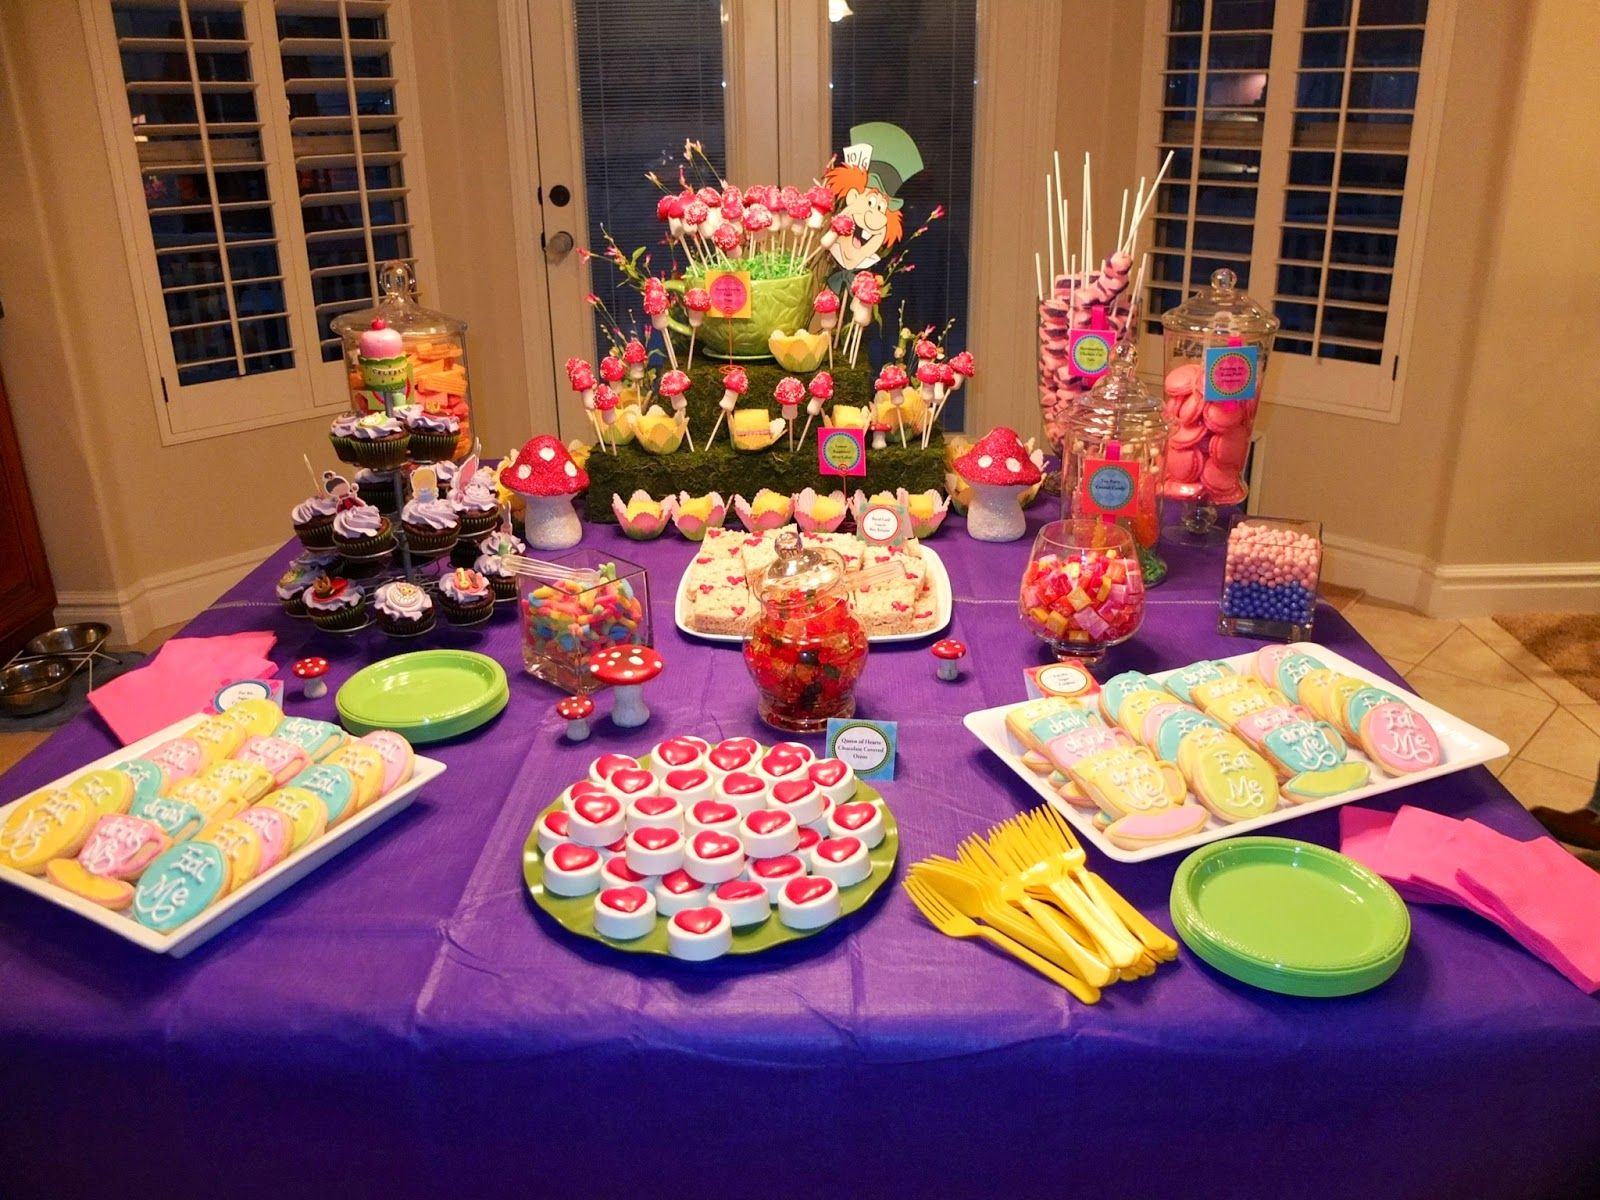 Mad hatter tea party decoration ideas - Alice In Wonderland Party And Wanted To Have A Mad Hatter And Alice In Wonderland